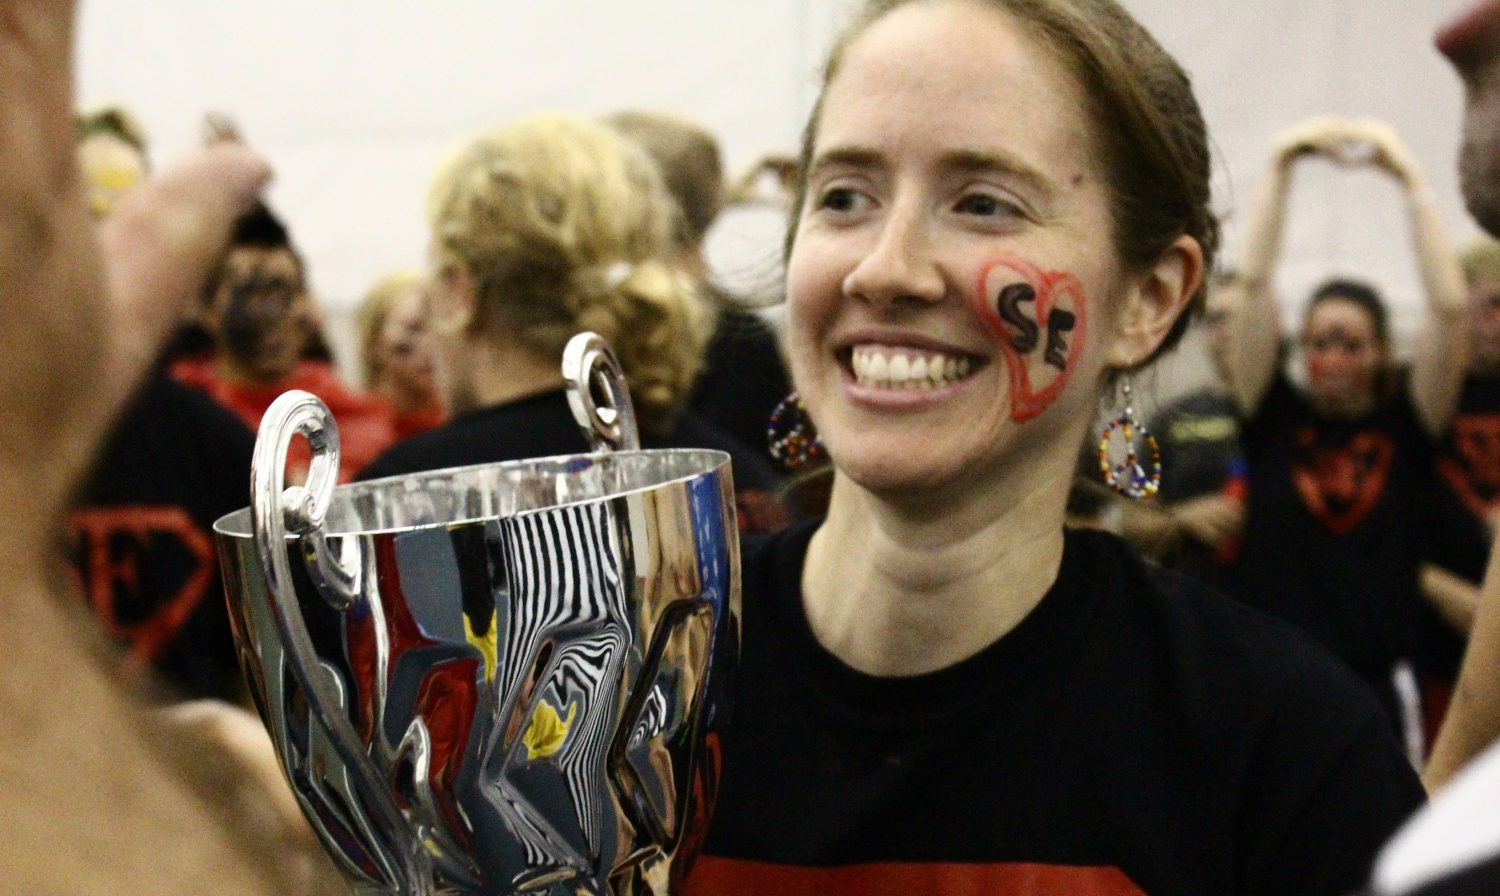 Schultze-Eldersveld+wins+Cup+of+Perspective+after+fourth-place+finish